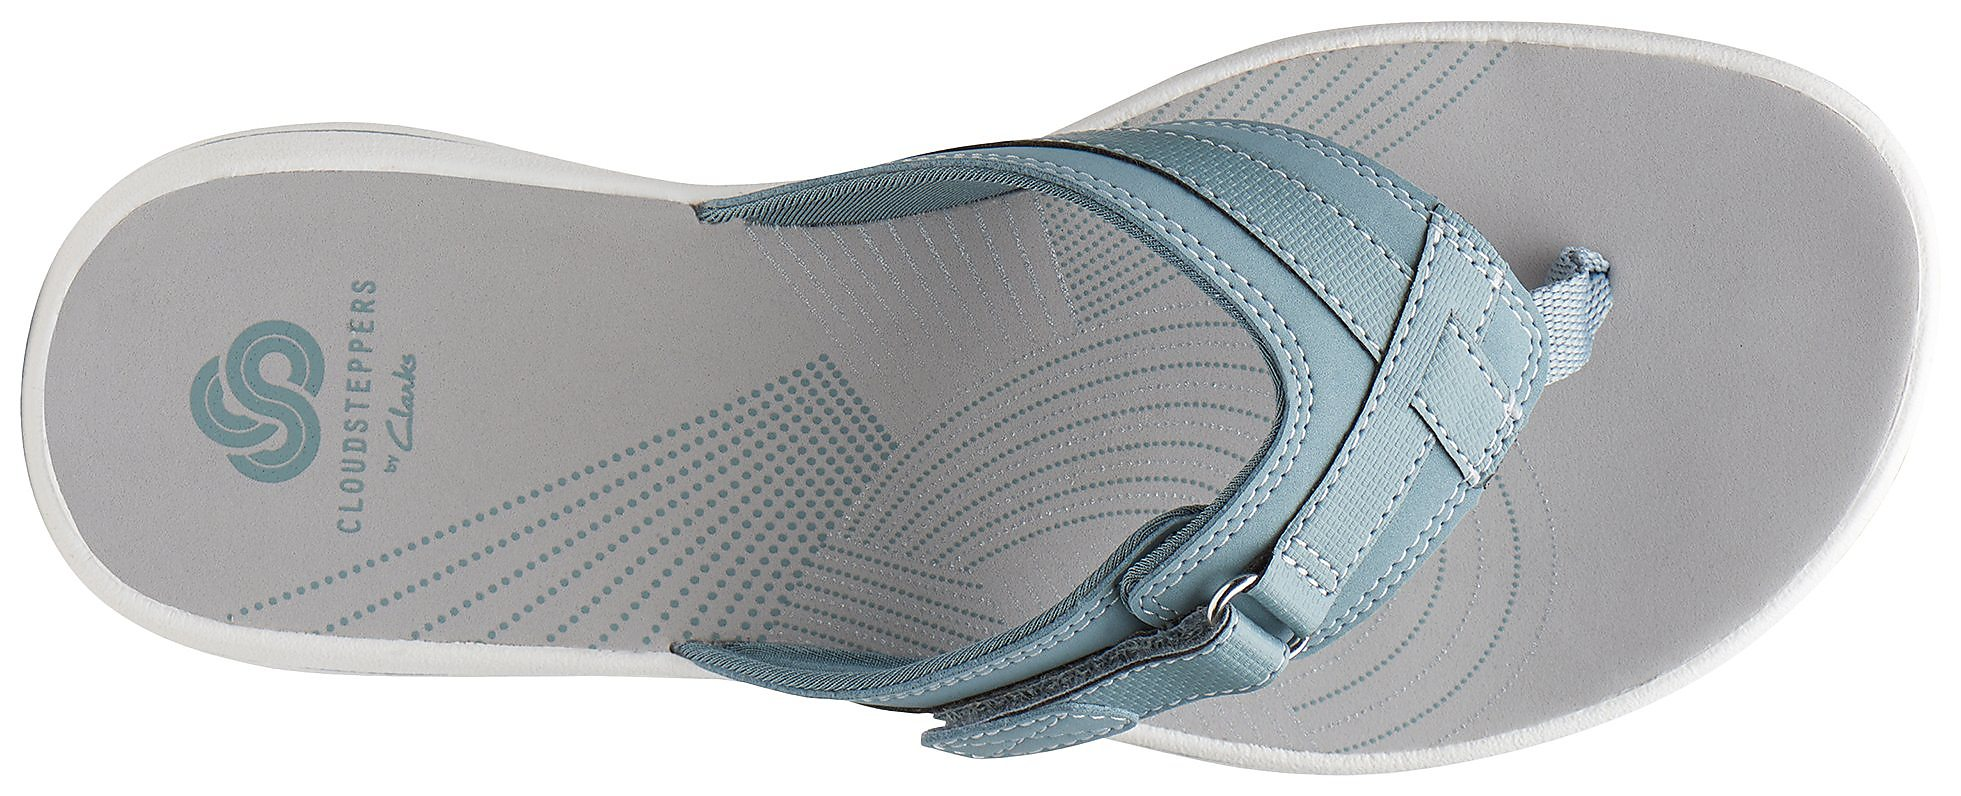 Clarks-Womens-Breeze-Sea-Flip-Flops-Comfort-Summer-Sandals thumbnail 9